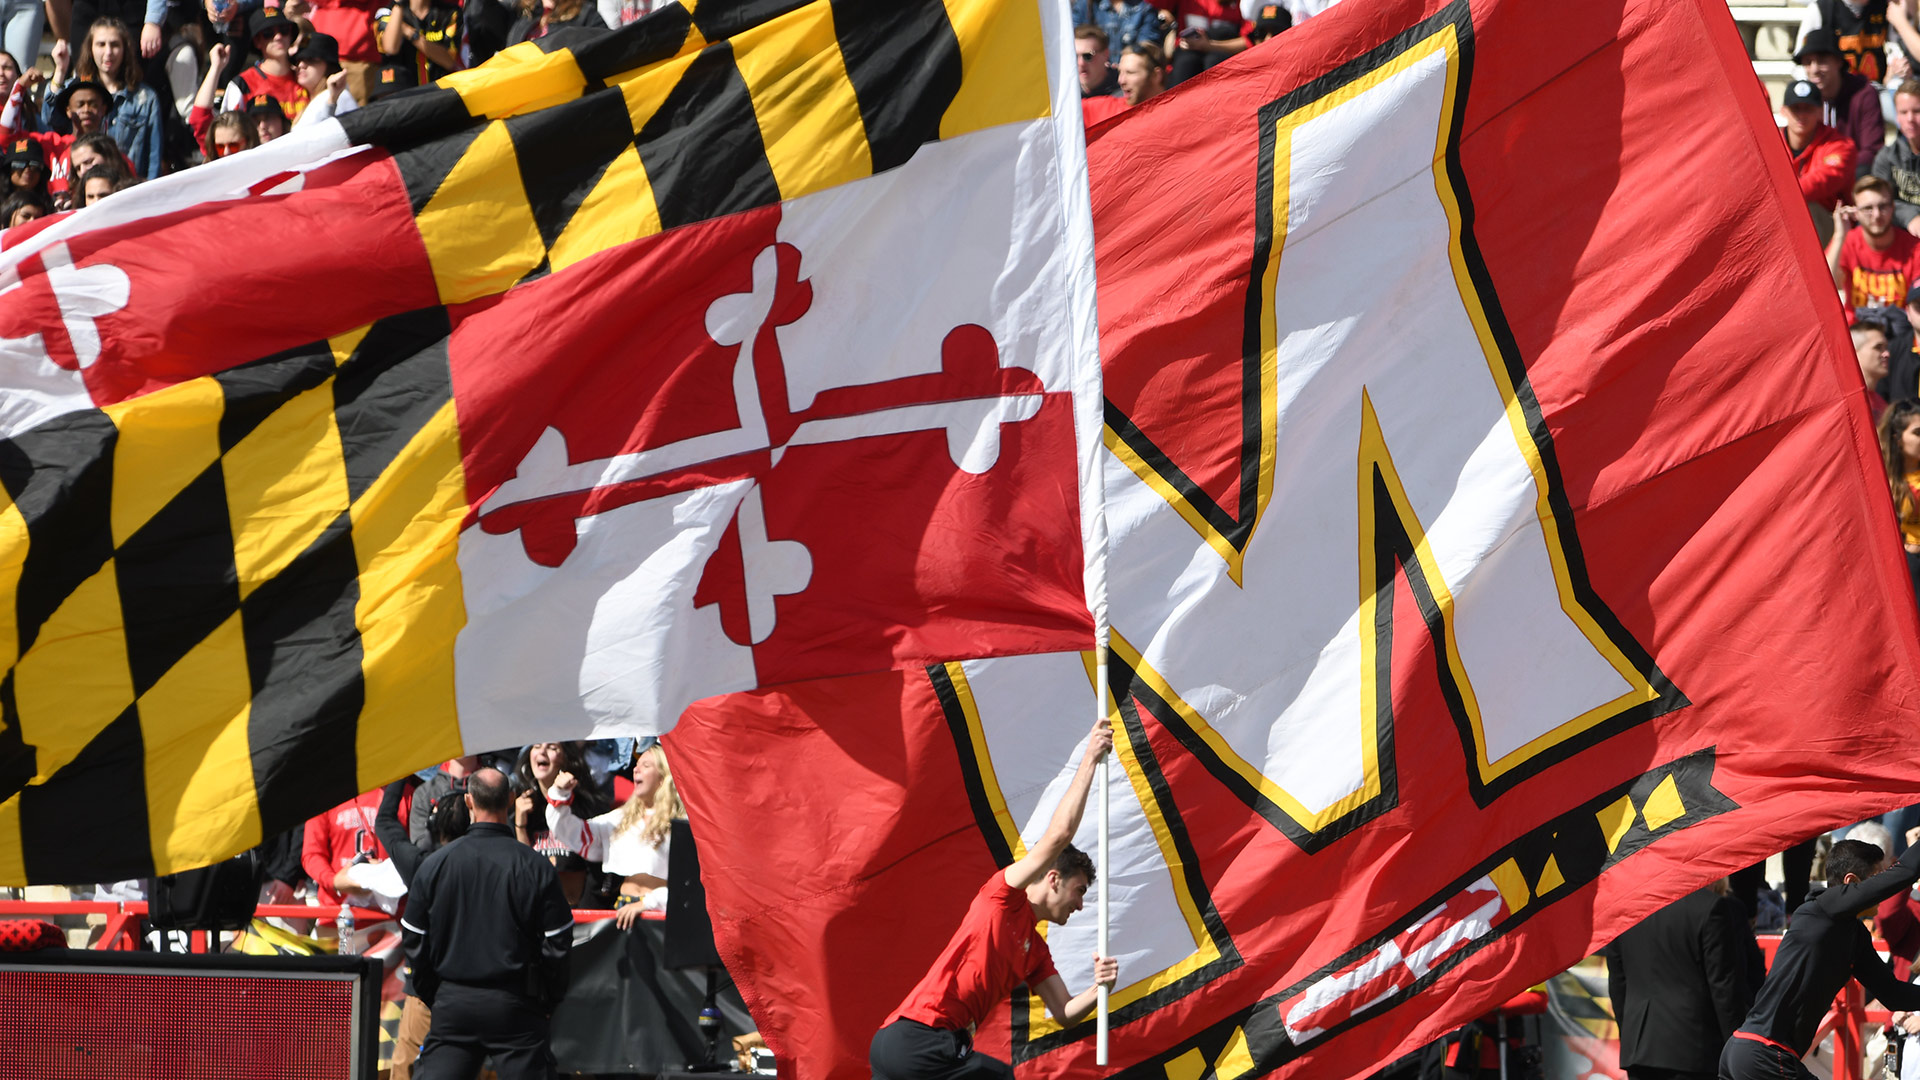 Celebrate Terp Pride With a Full Week of Virtual Events Oct. 26-30